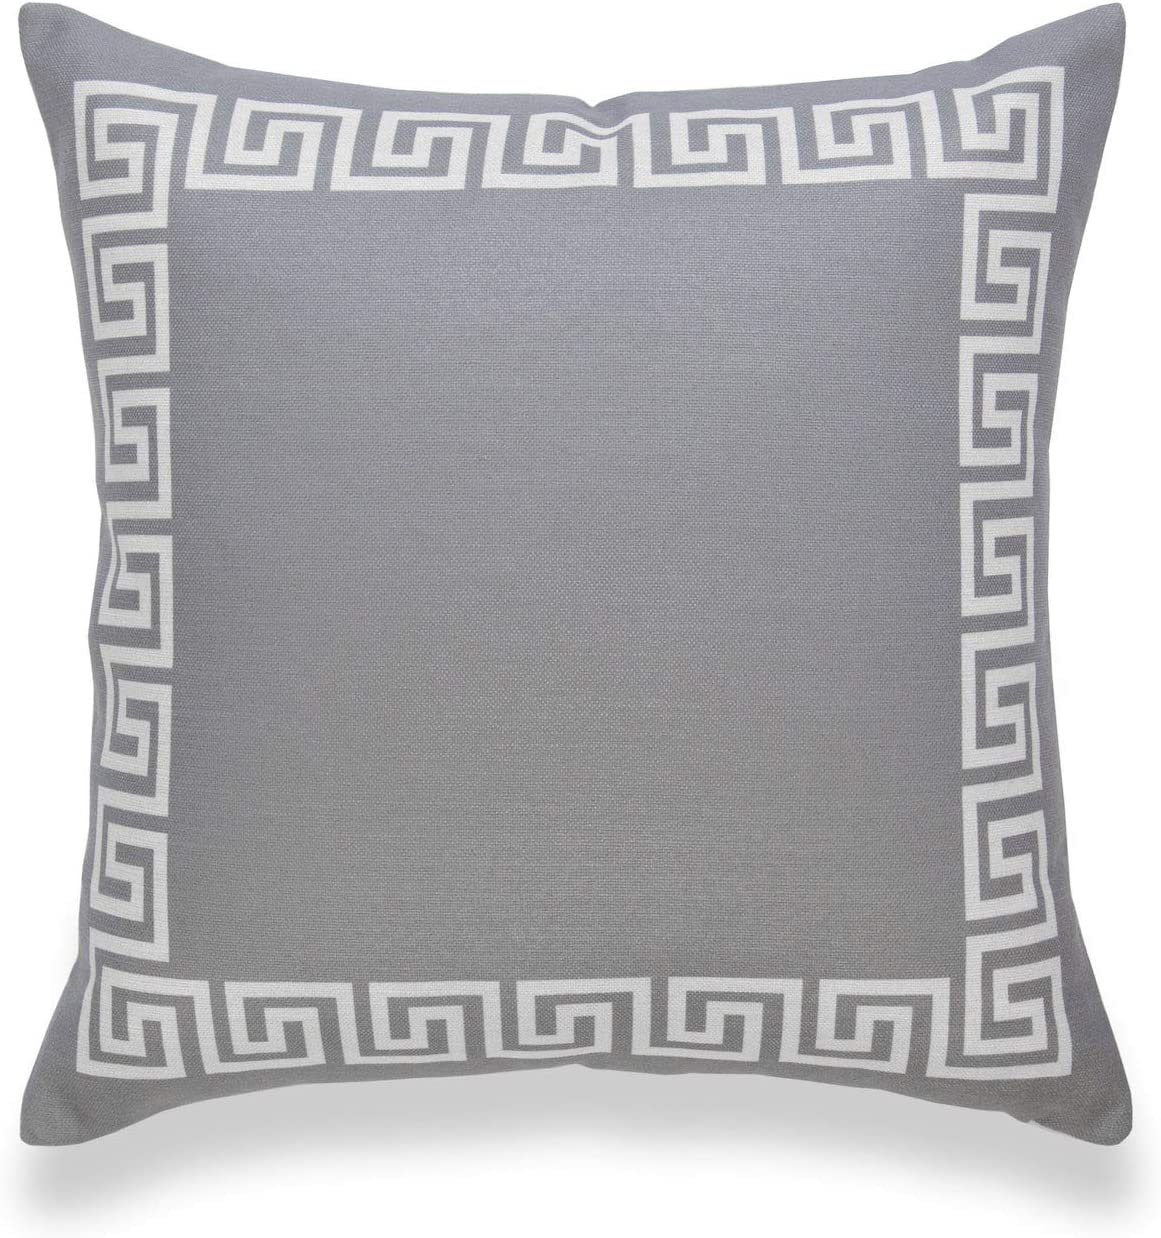 Hofdeco Neutral Decorative Throw Pillow Cover ONLY, for Couch, Sofa, or Bed, Dark Gray Greek Key, 18